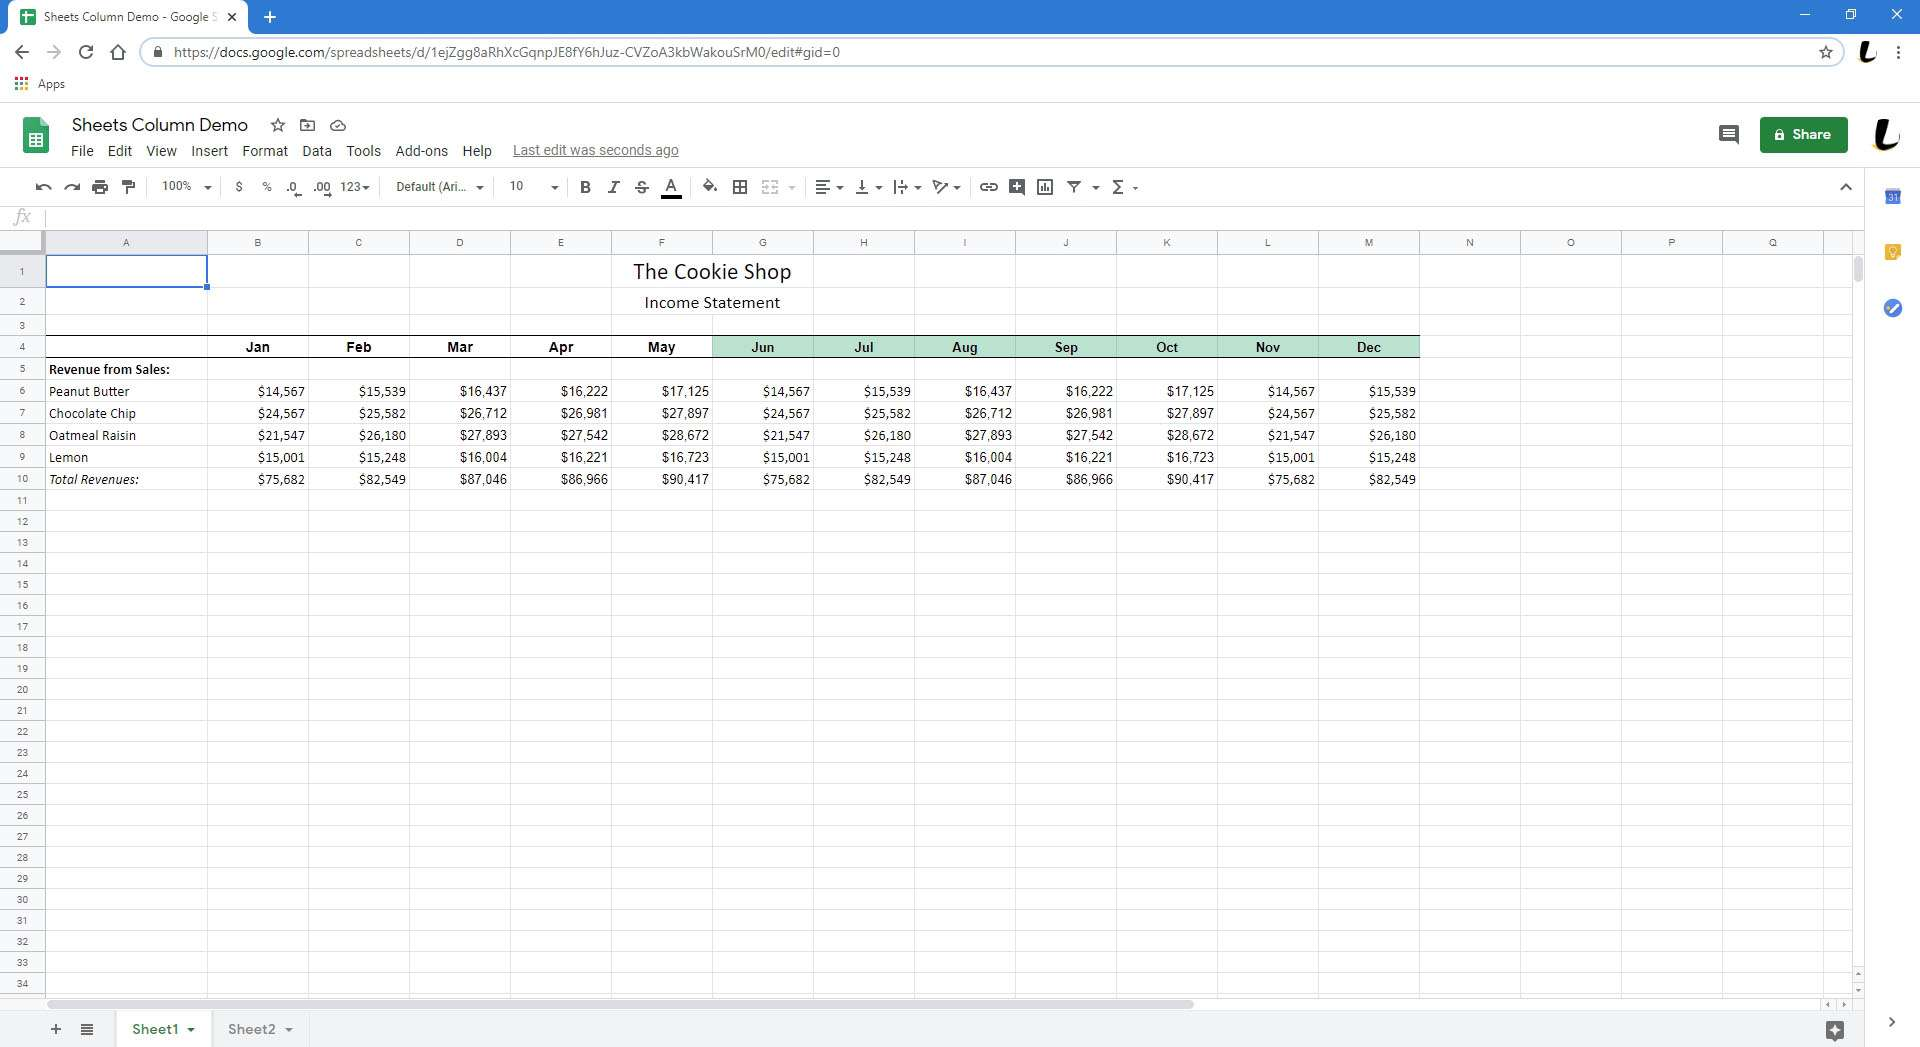 Another spreadsheet in Sheets.